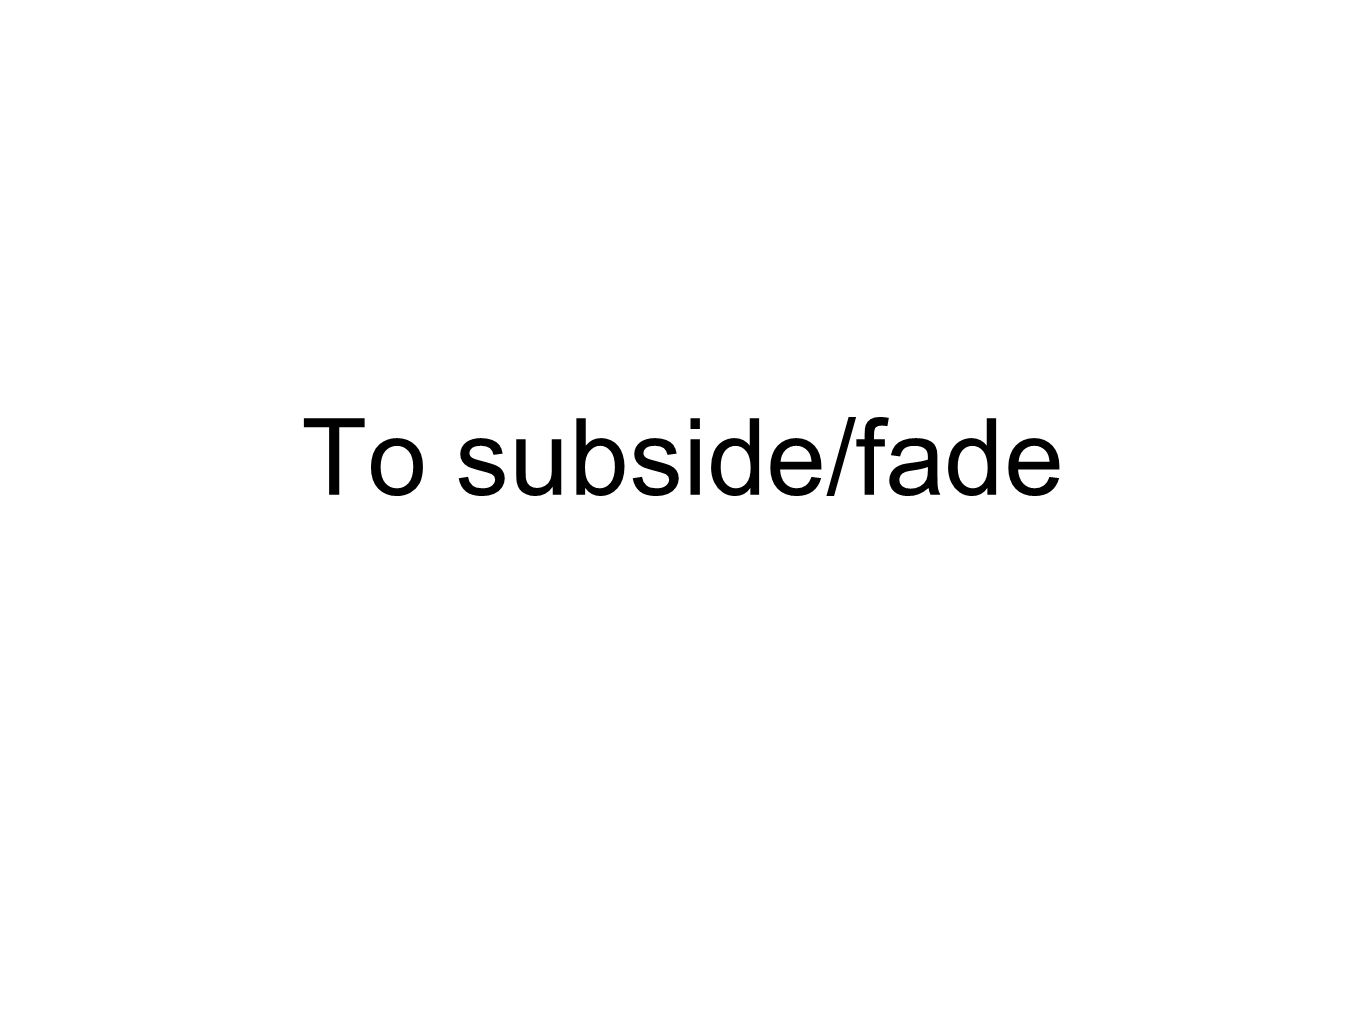 To subside/fade